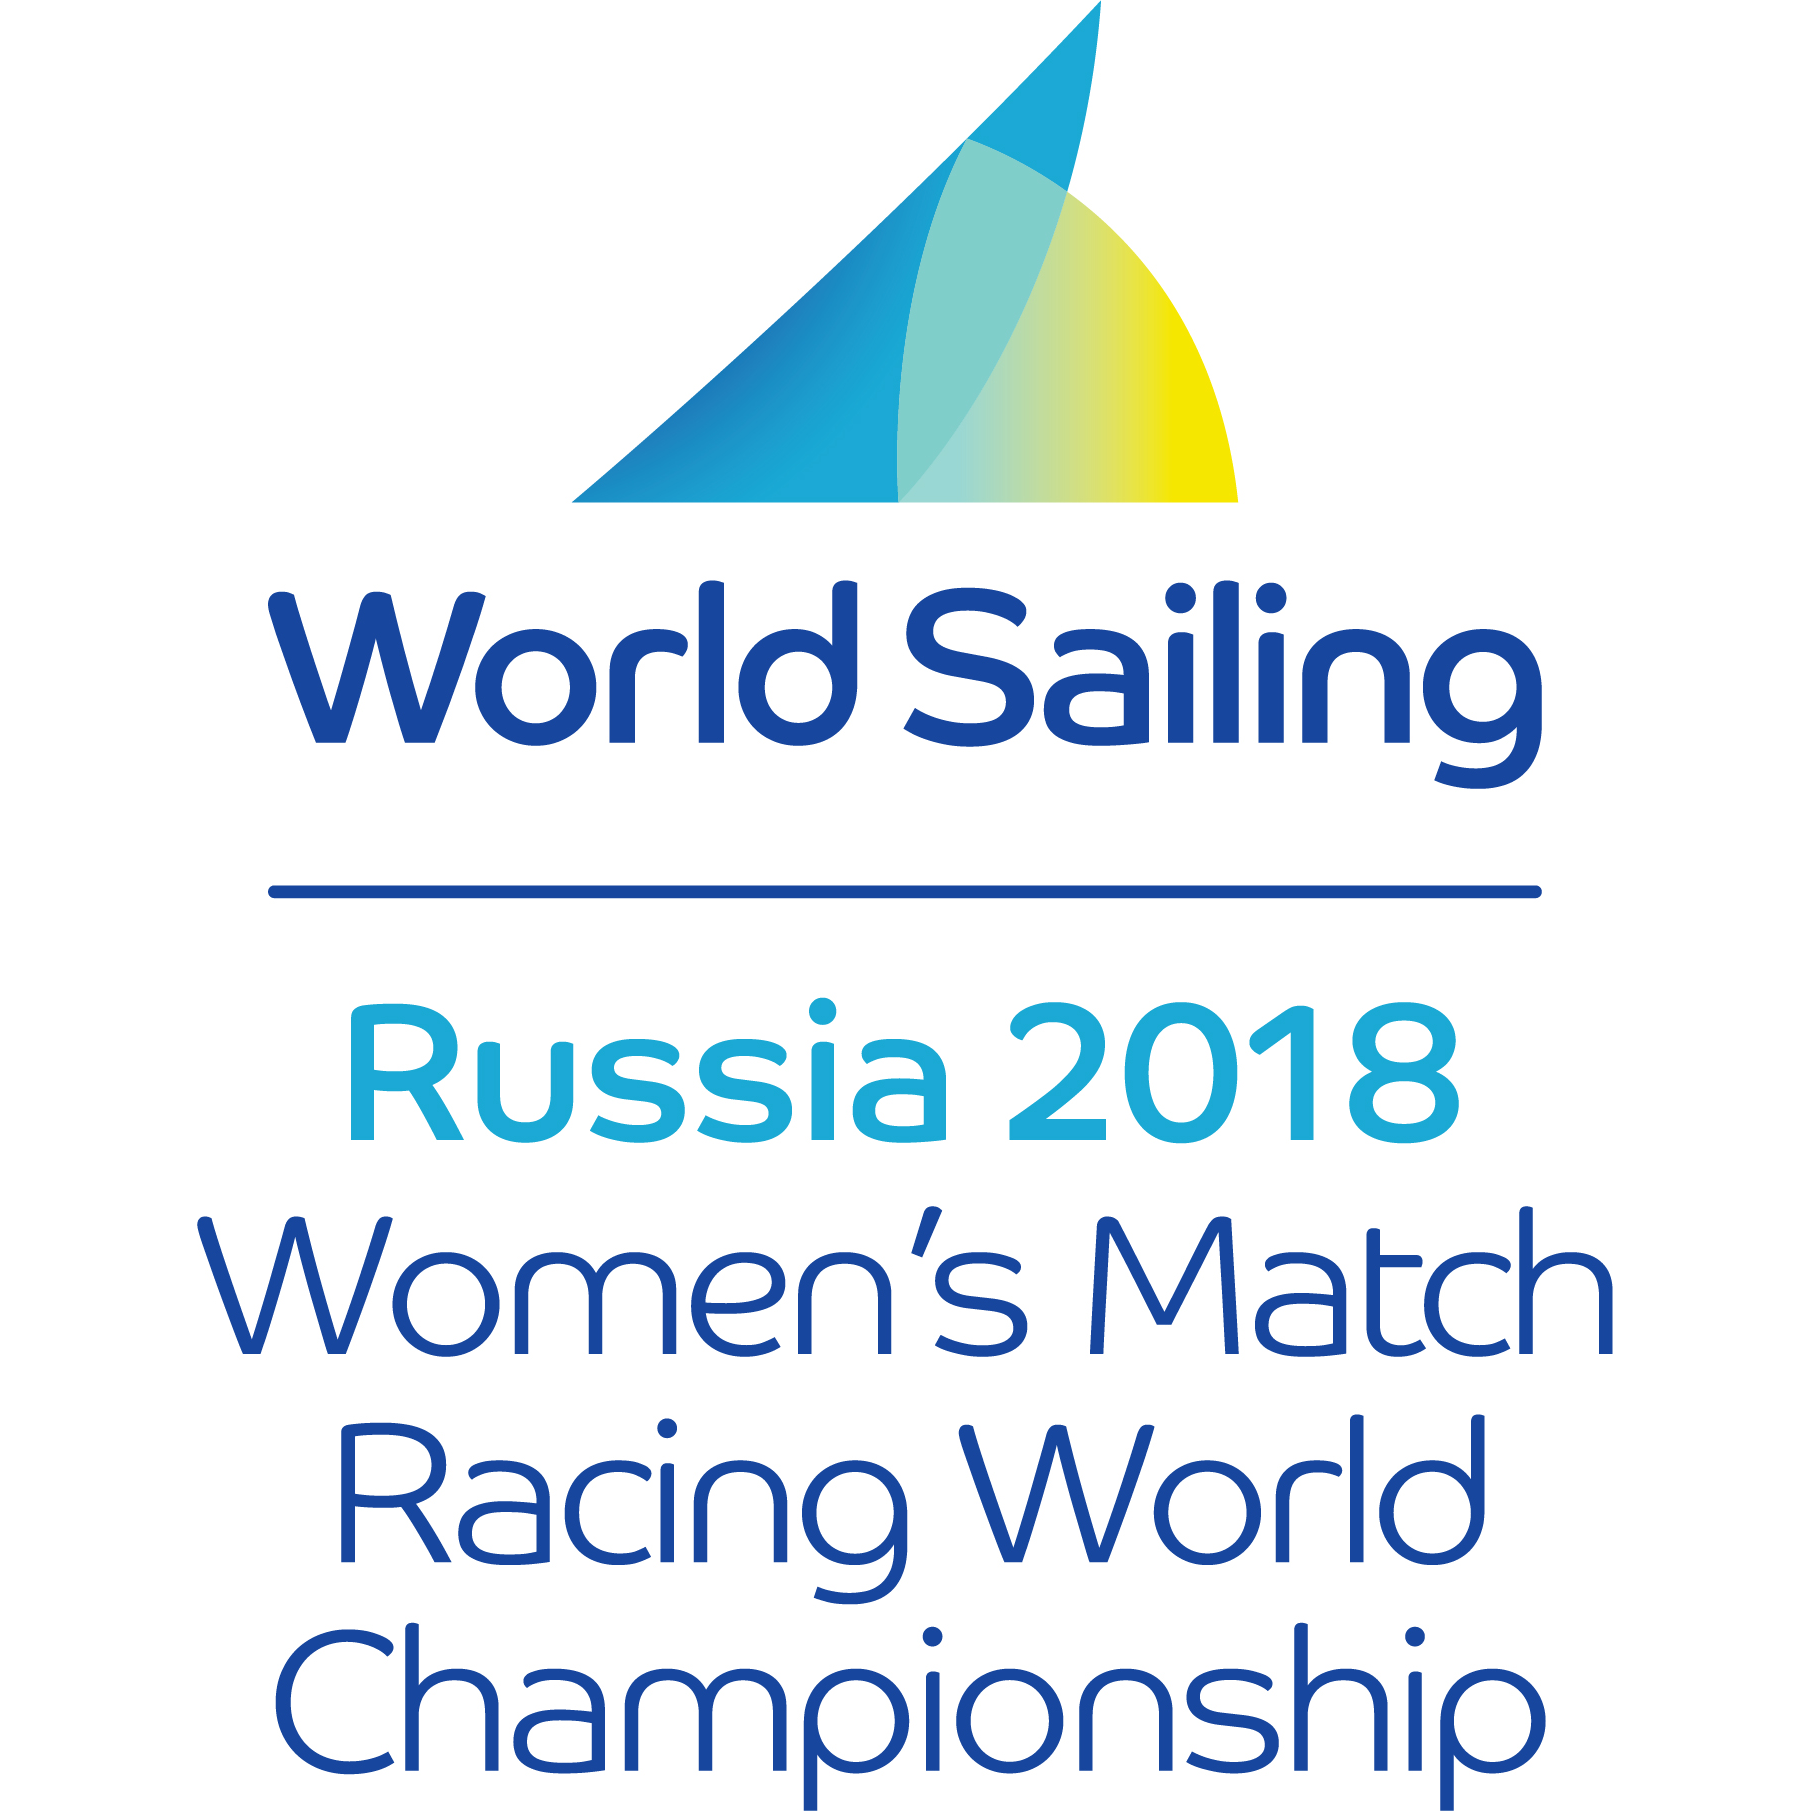 2018 Women's Match Racing World Championship